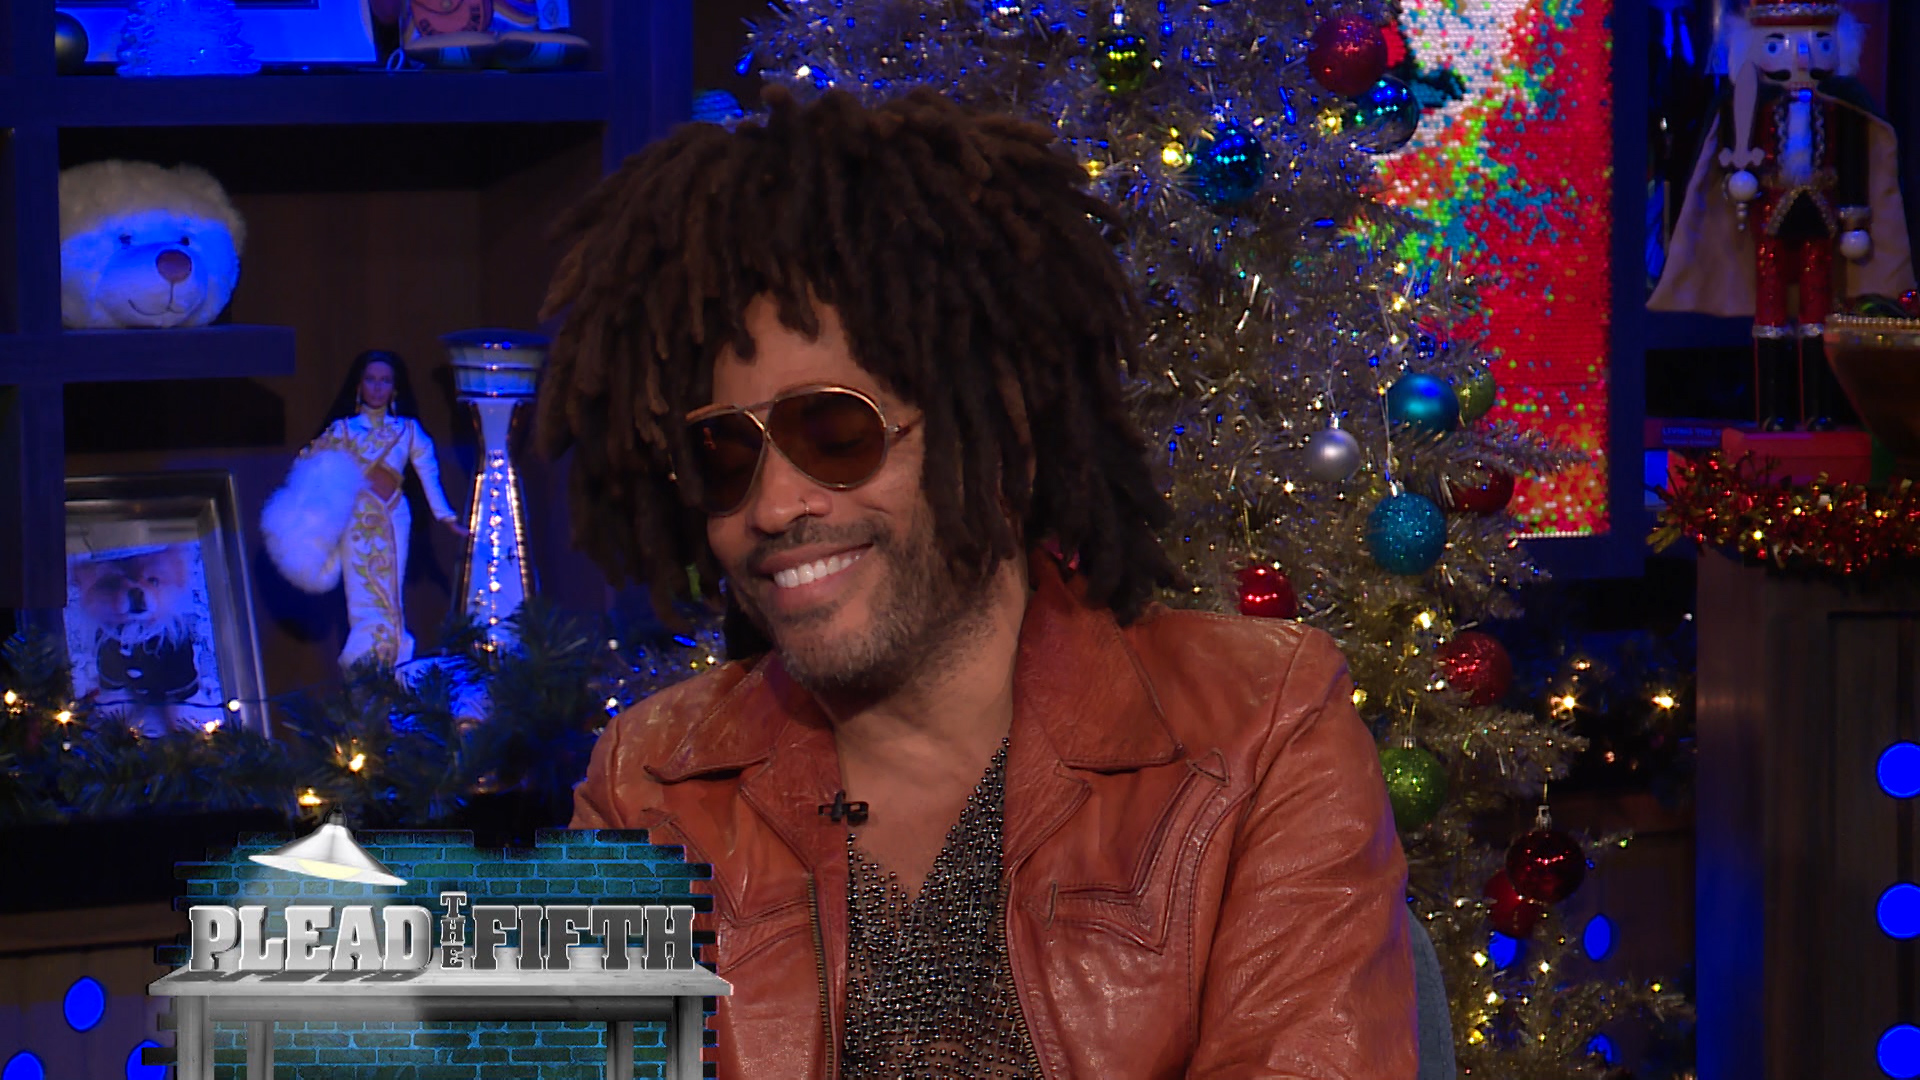 Lenny Kravitz Plays Plead the Fifth!